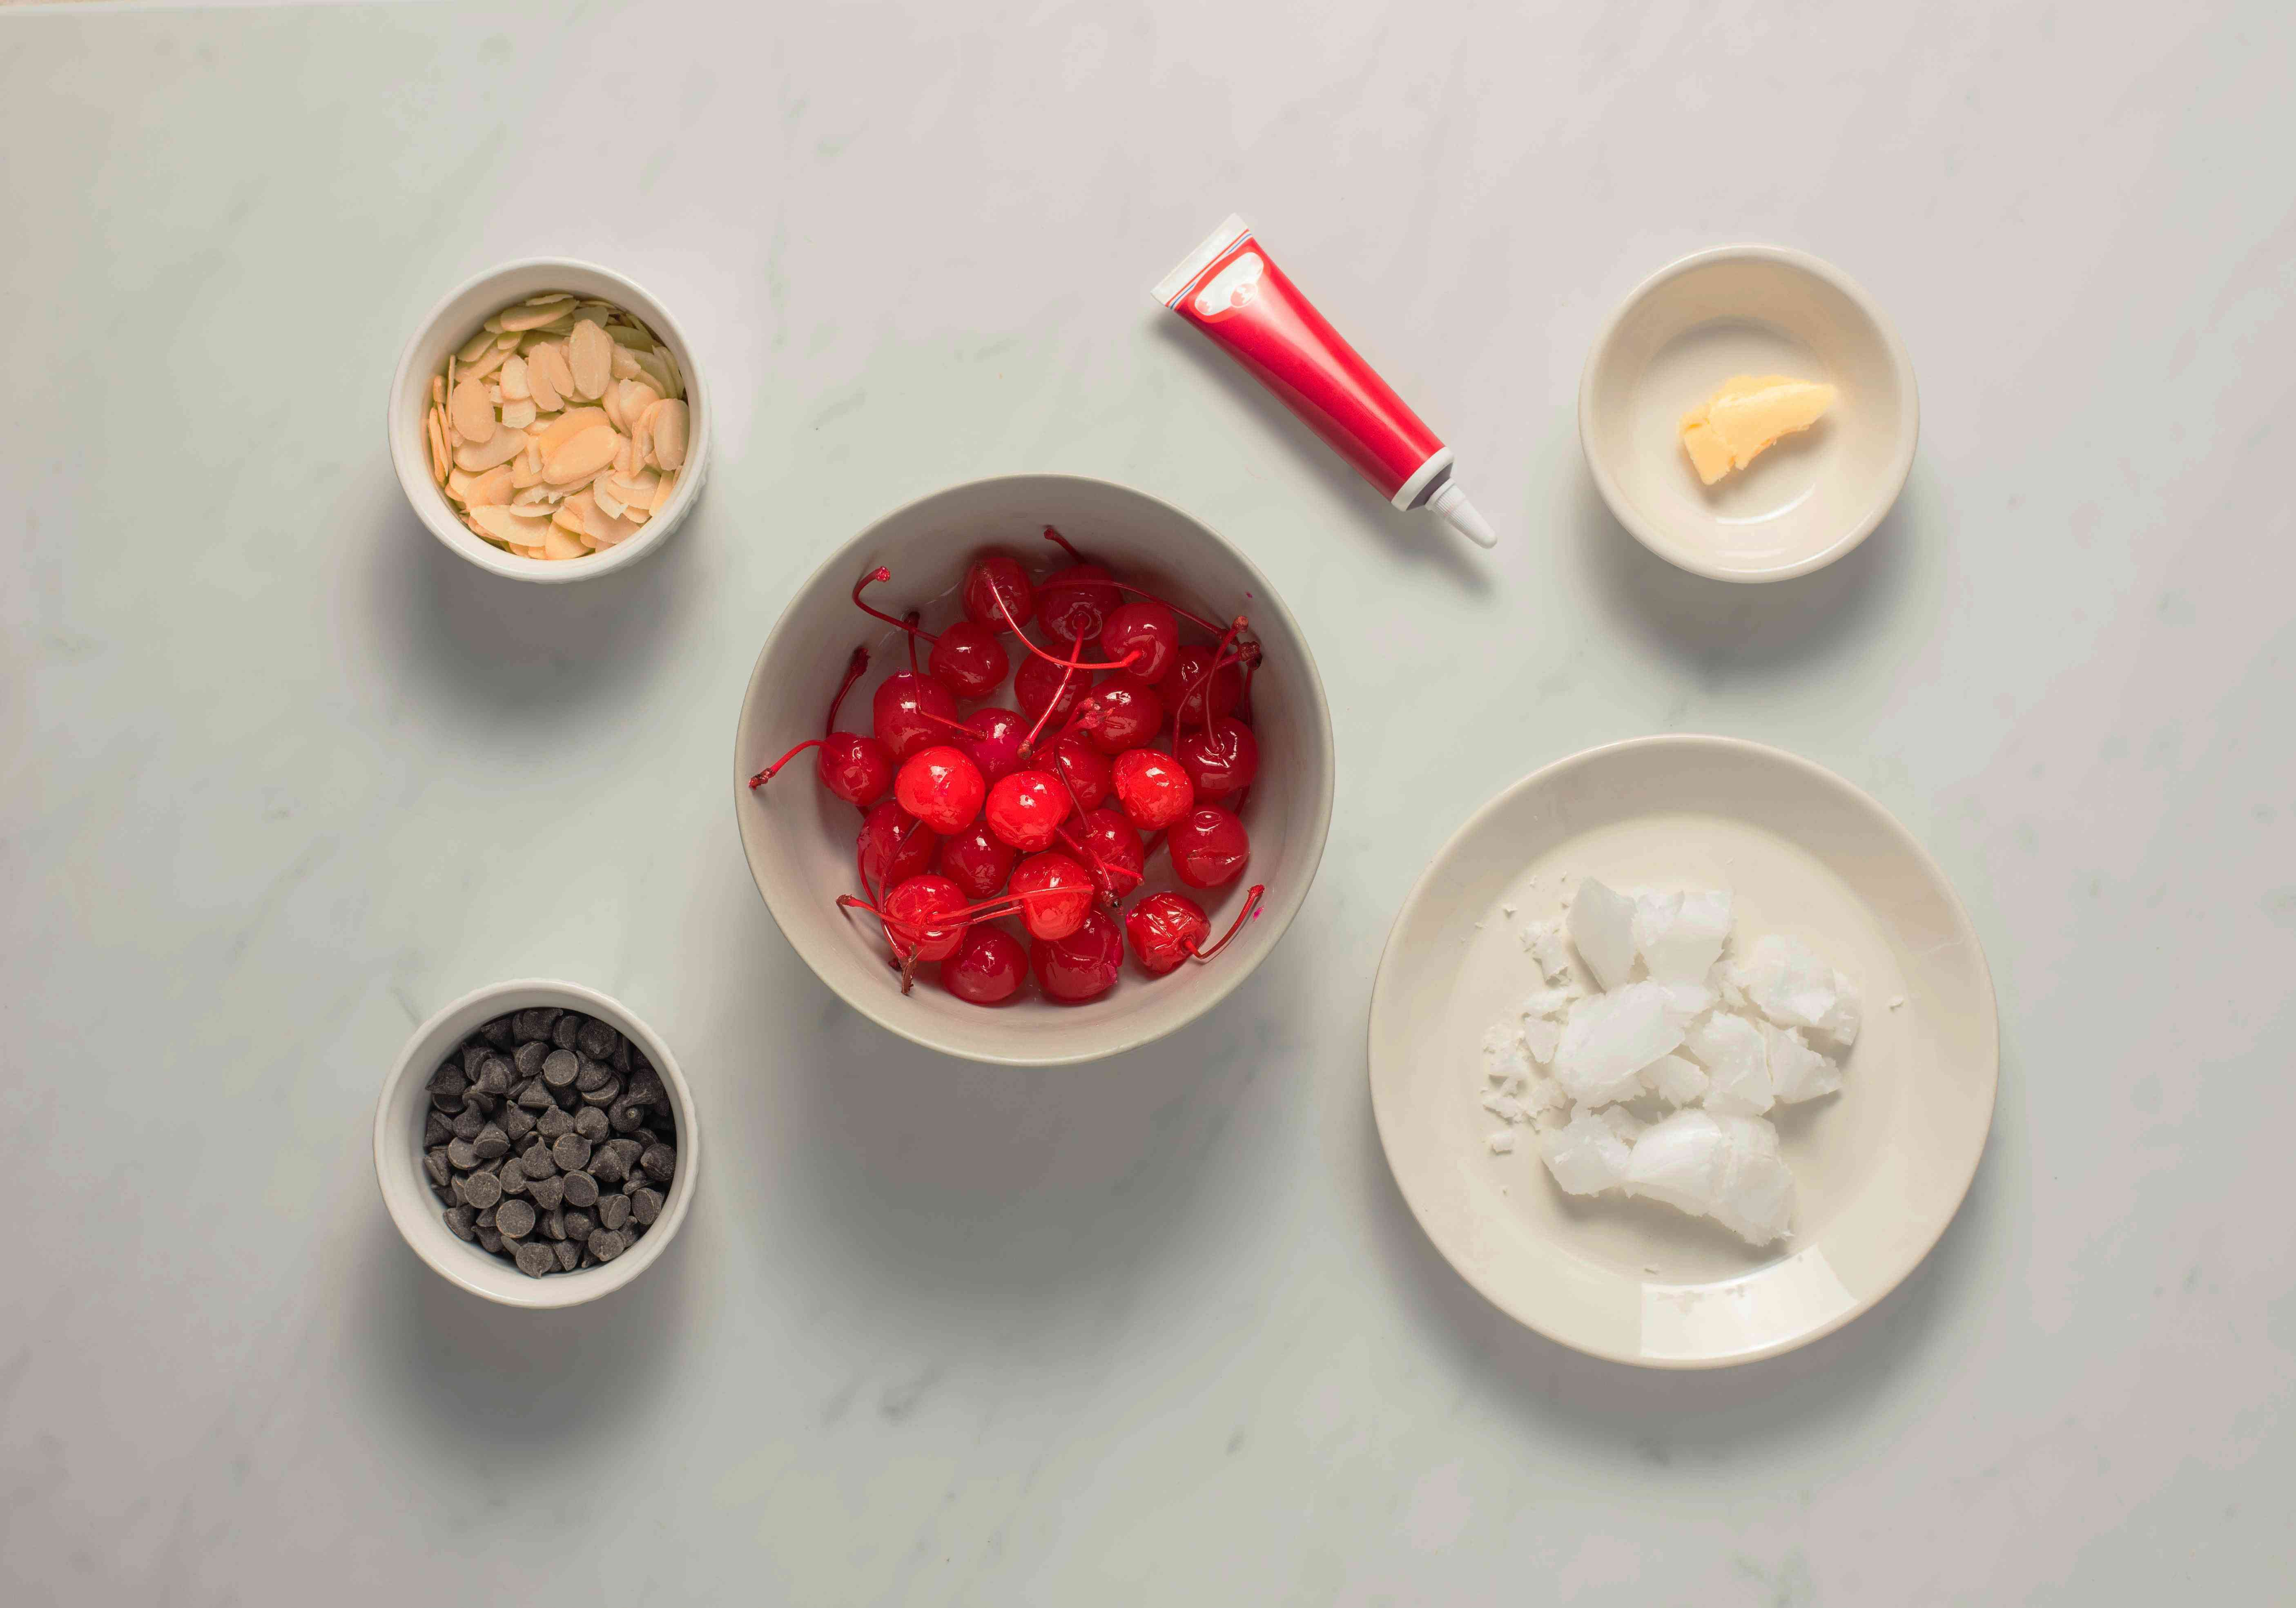 Ingredients for chocolate covered cherry mice